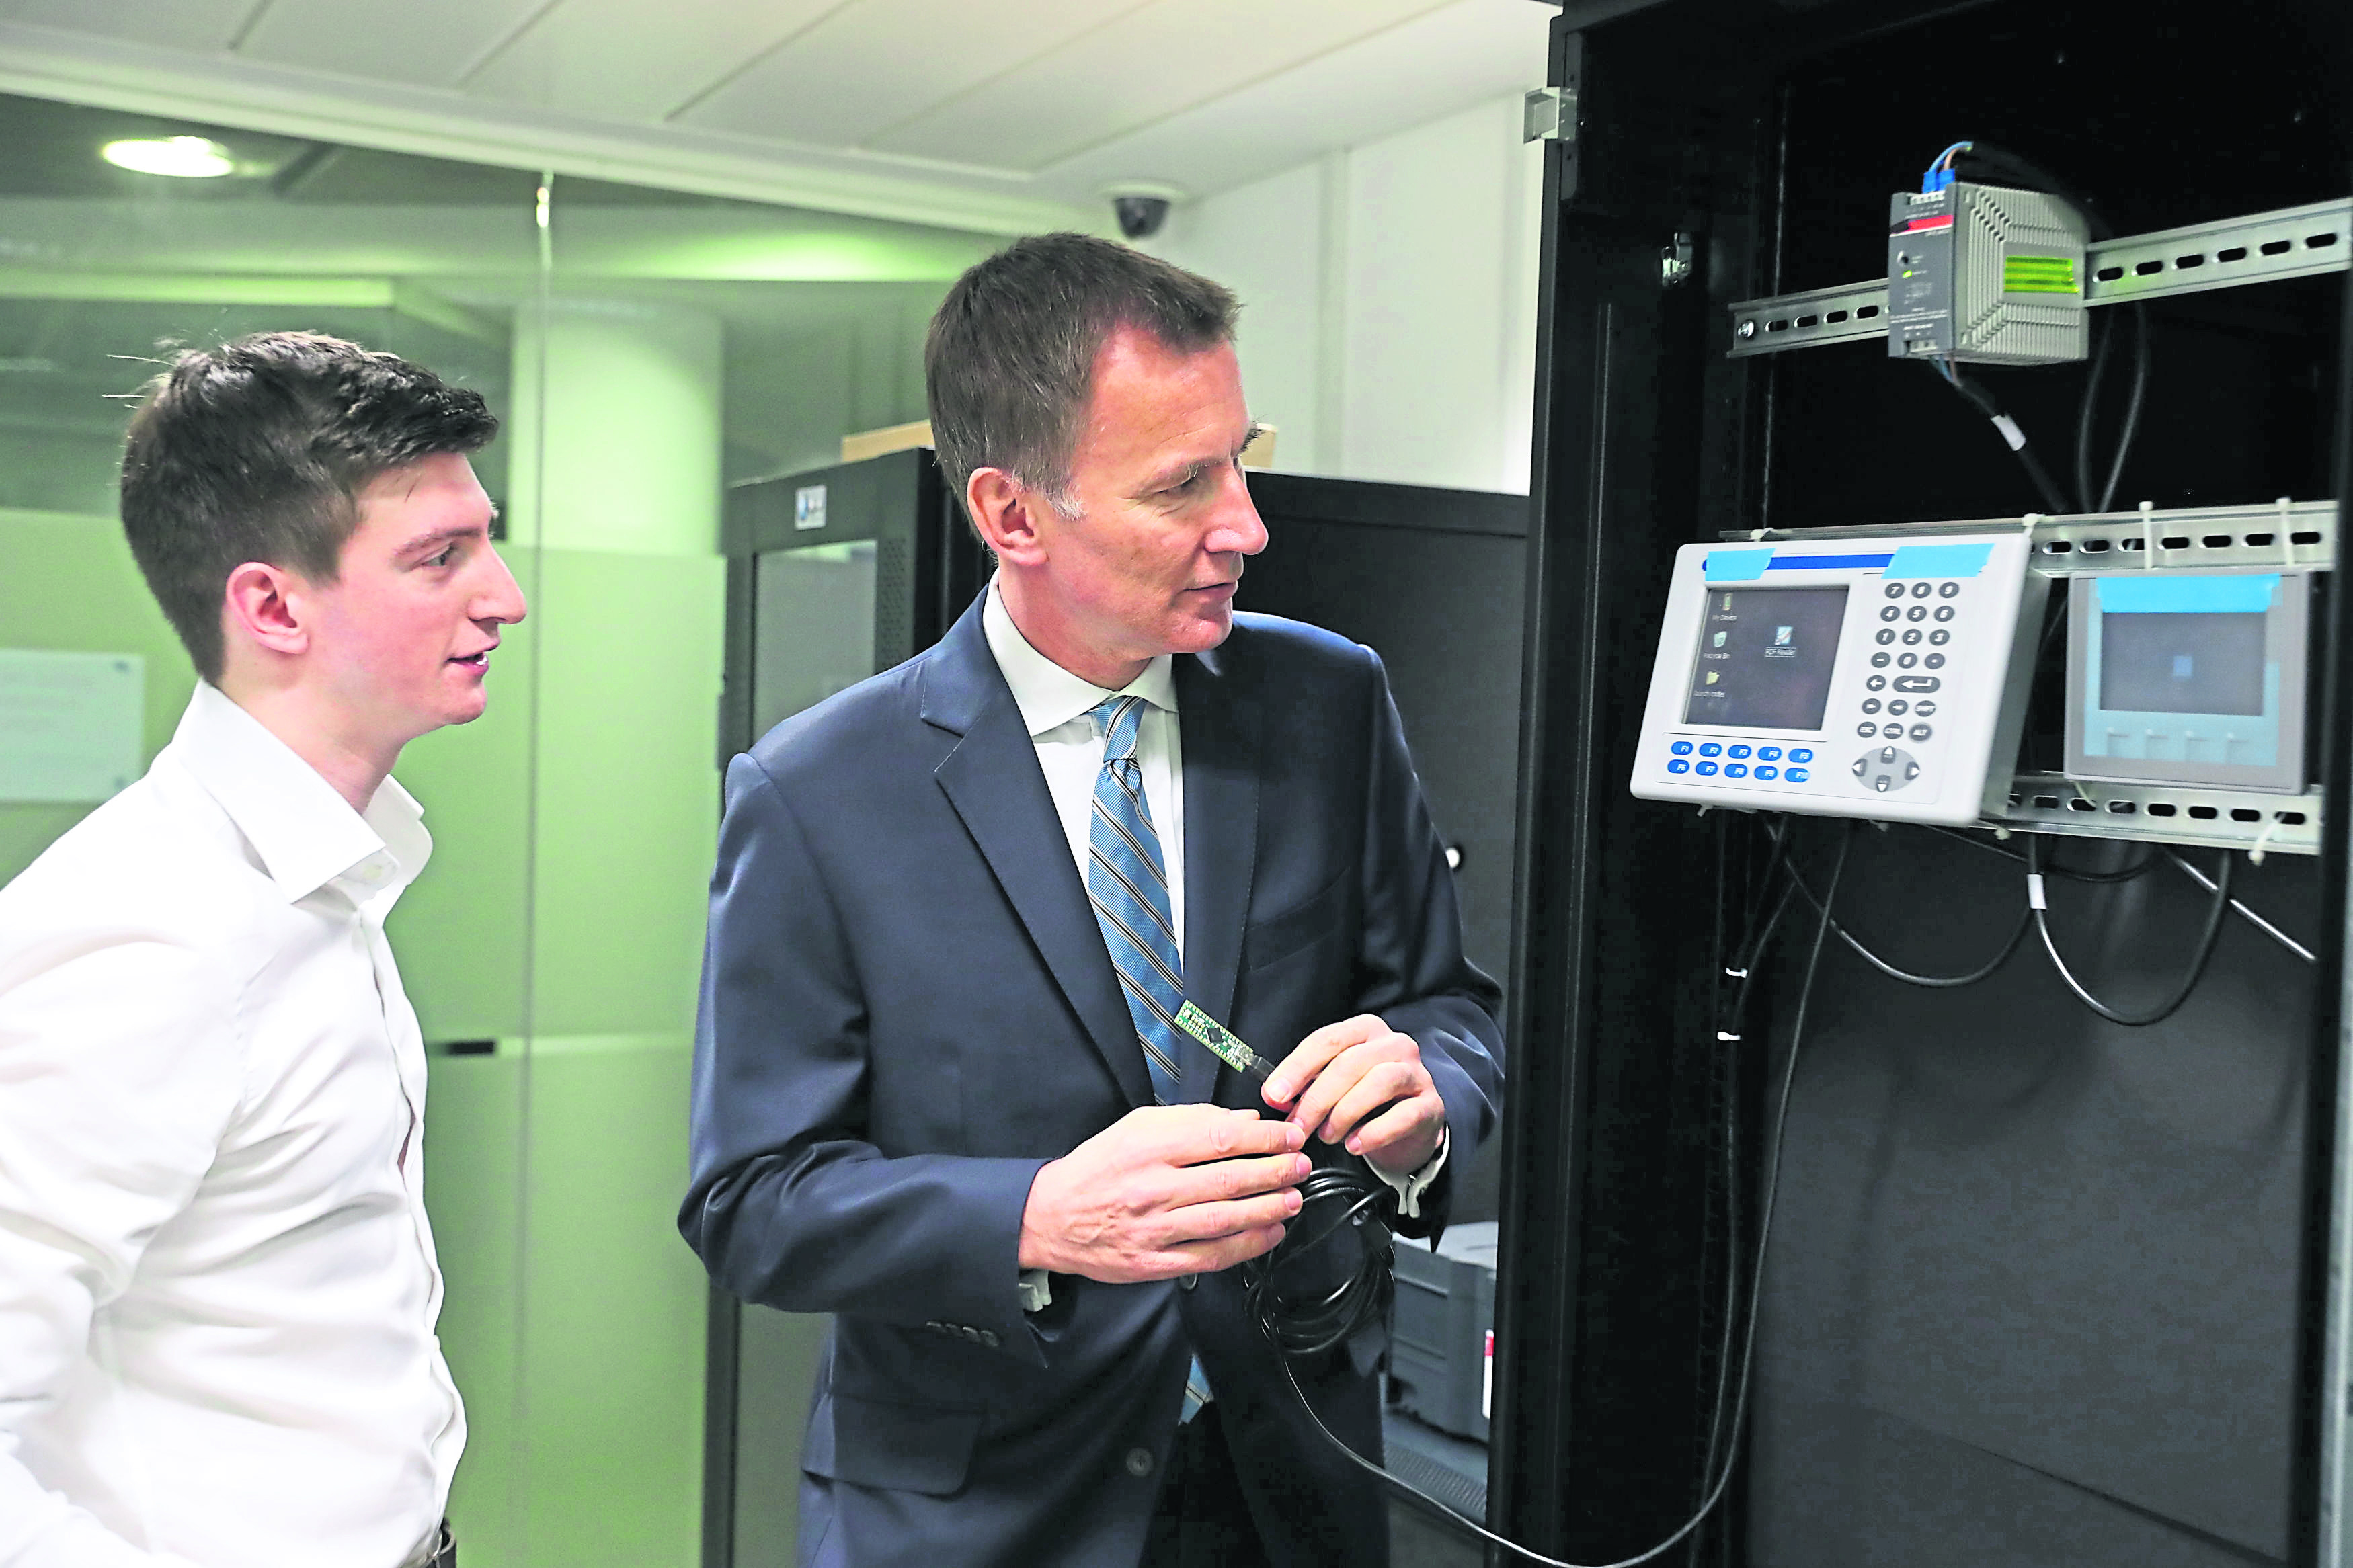 Foreign Secretary Jeremy Hunt creates a cyber attack during a demonstration with student Marco Cook as he visits the Sir Alwyn Williams Building at the University of Glasgow ahead of his speech on Defending Democracy in the Cyber Age. PRESS ASSOCIATION Photo. Picture date: Thursday March 7, 2019. See PA story POLITICS Hunt. Photo credit should read: Andrew Milligan/PA Wire